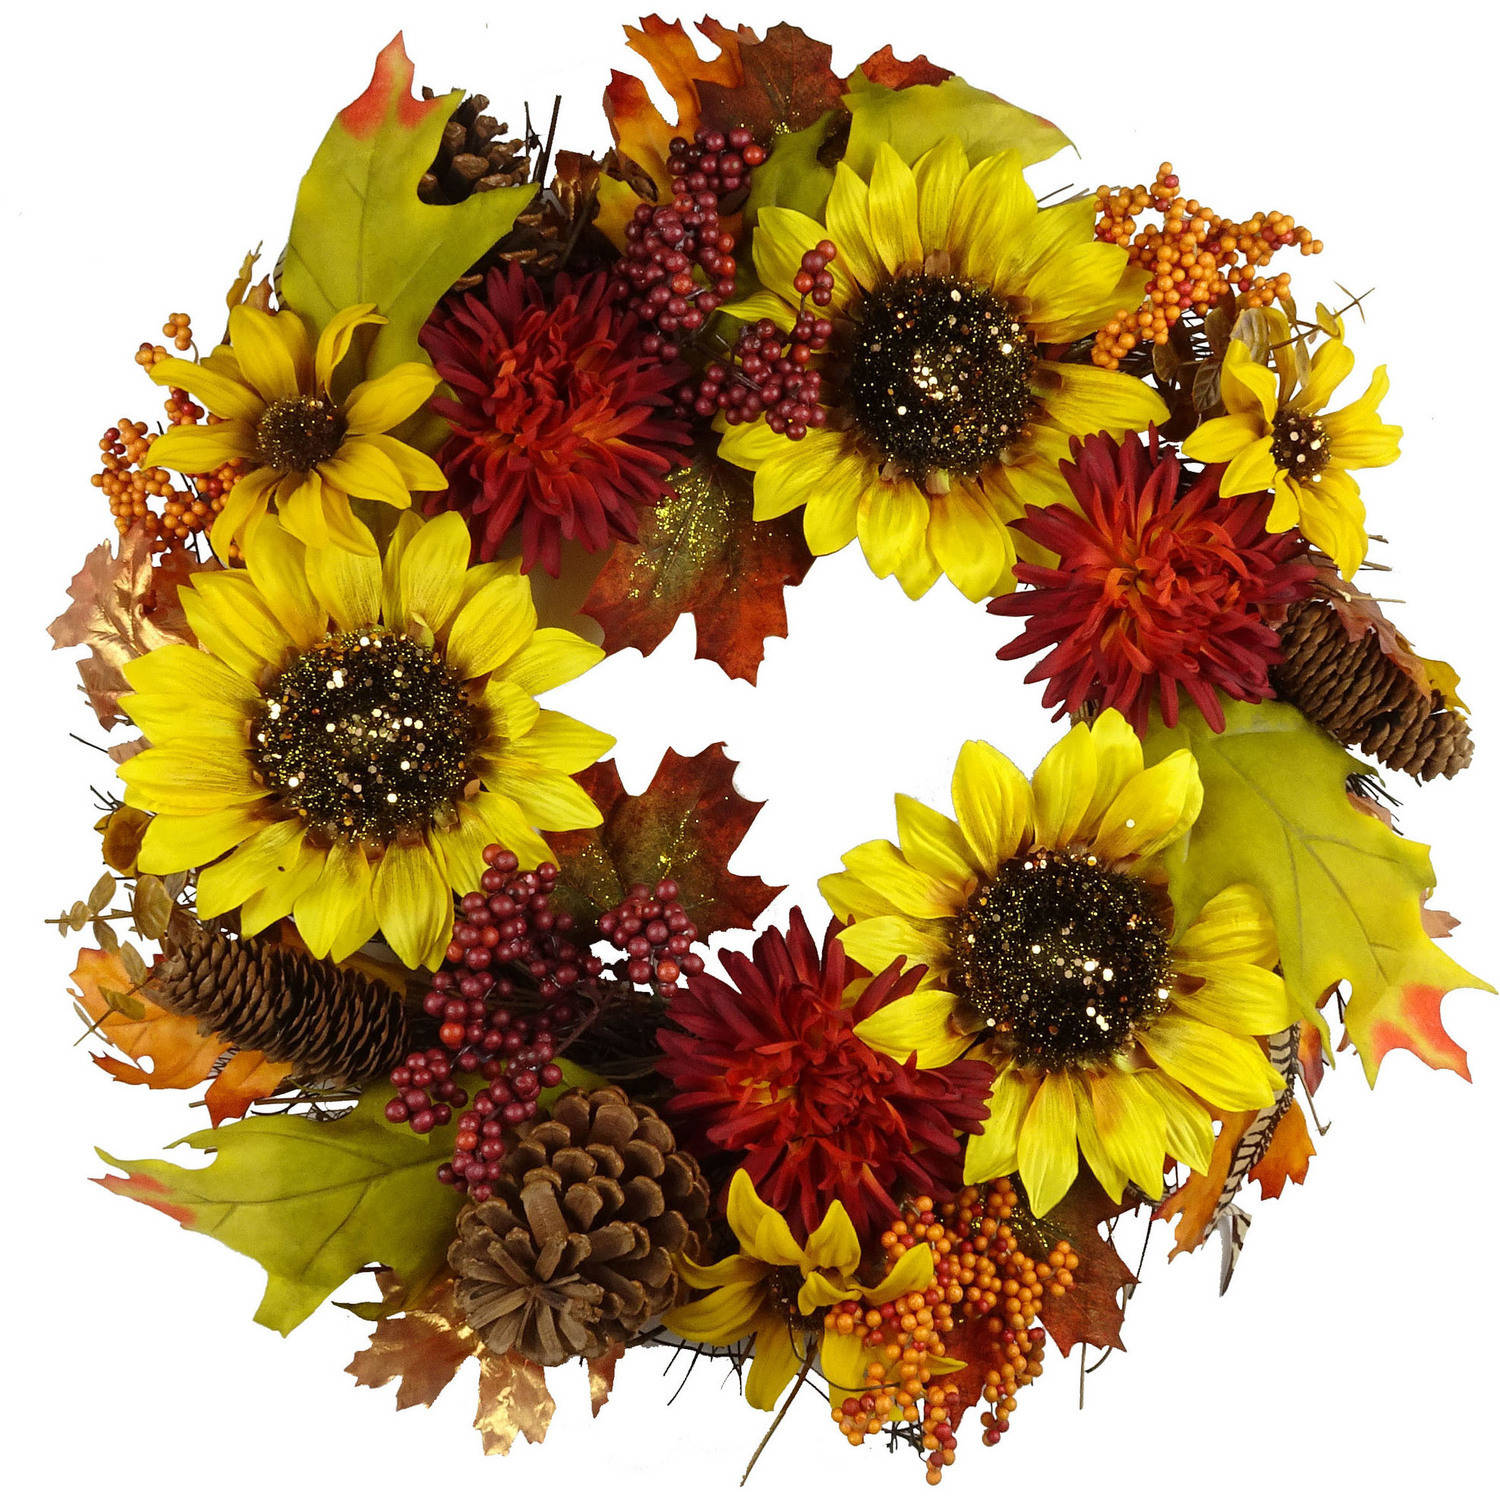 Large Yellow Sunflower Mixed Wreath Fall Harvest Halloween Decoration TS122936-01